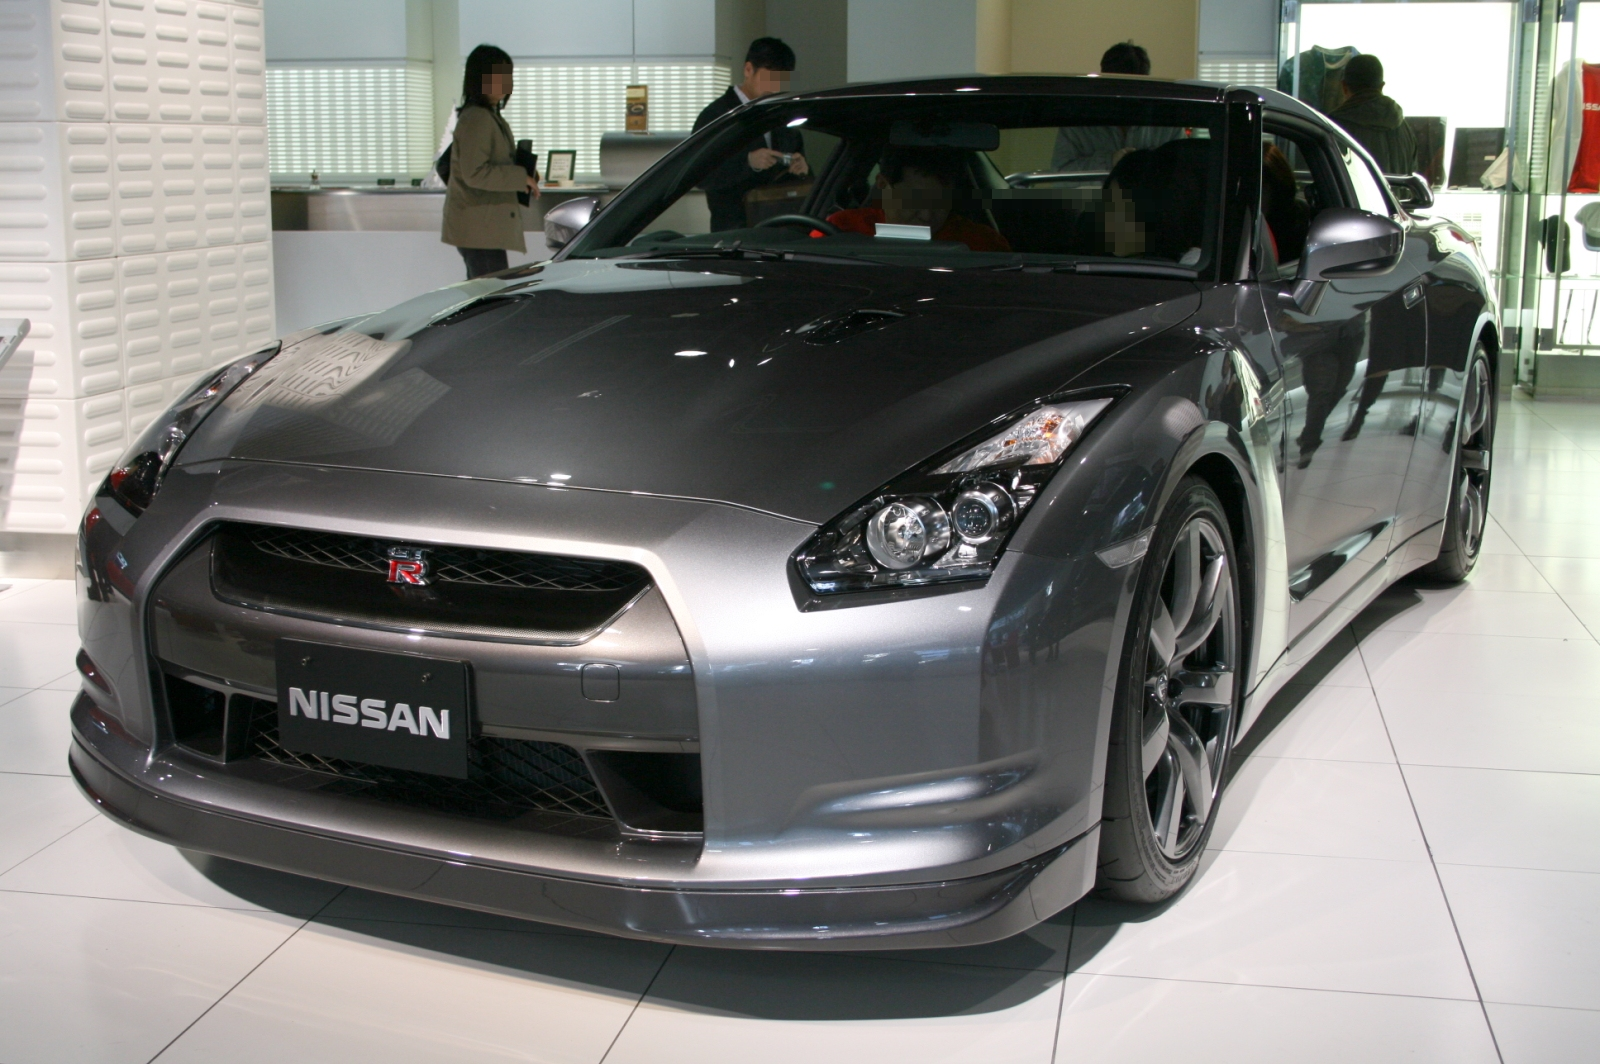 file:nissan gt-r in nissan gallery - wikimedia commons